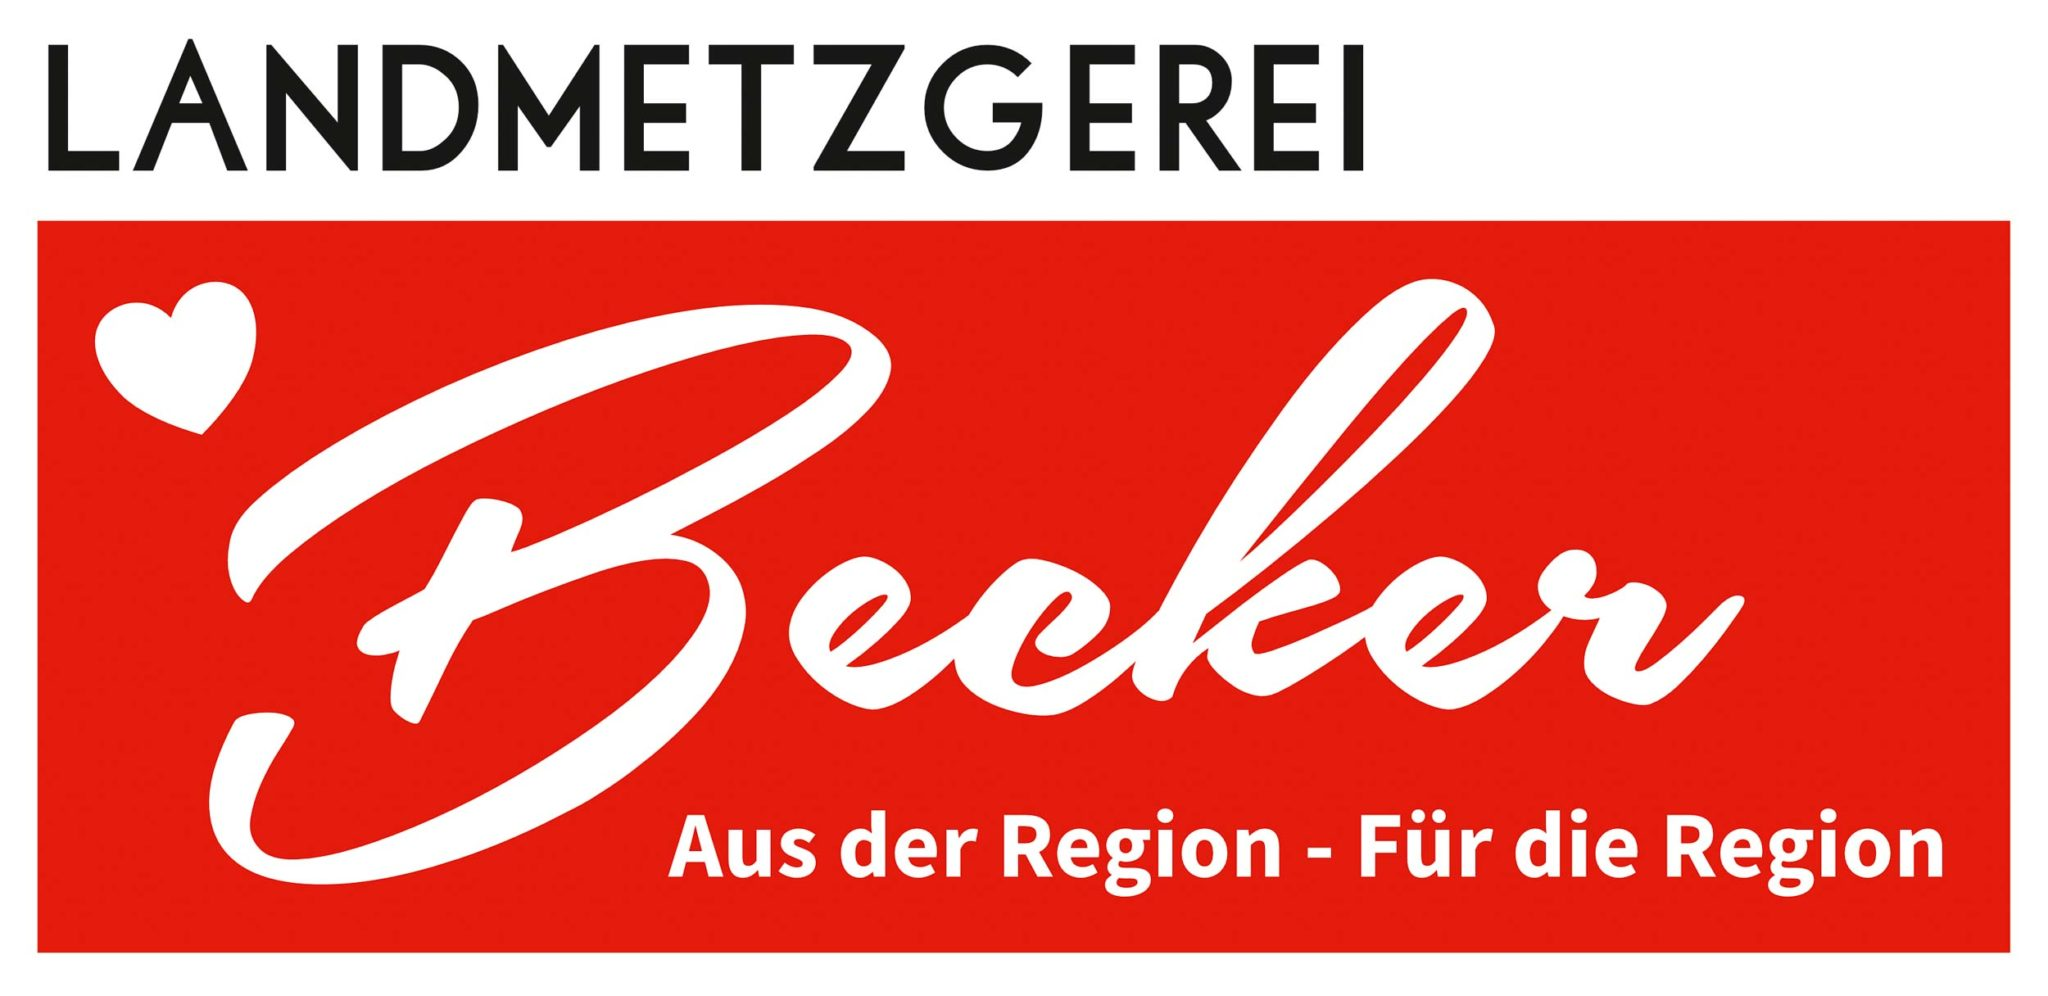 Landmetzgerei Becker Solms